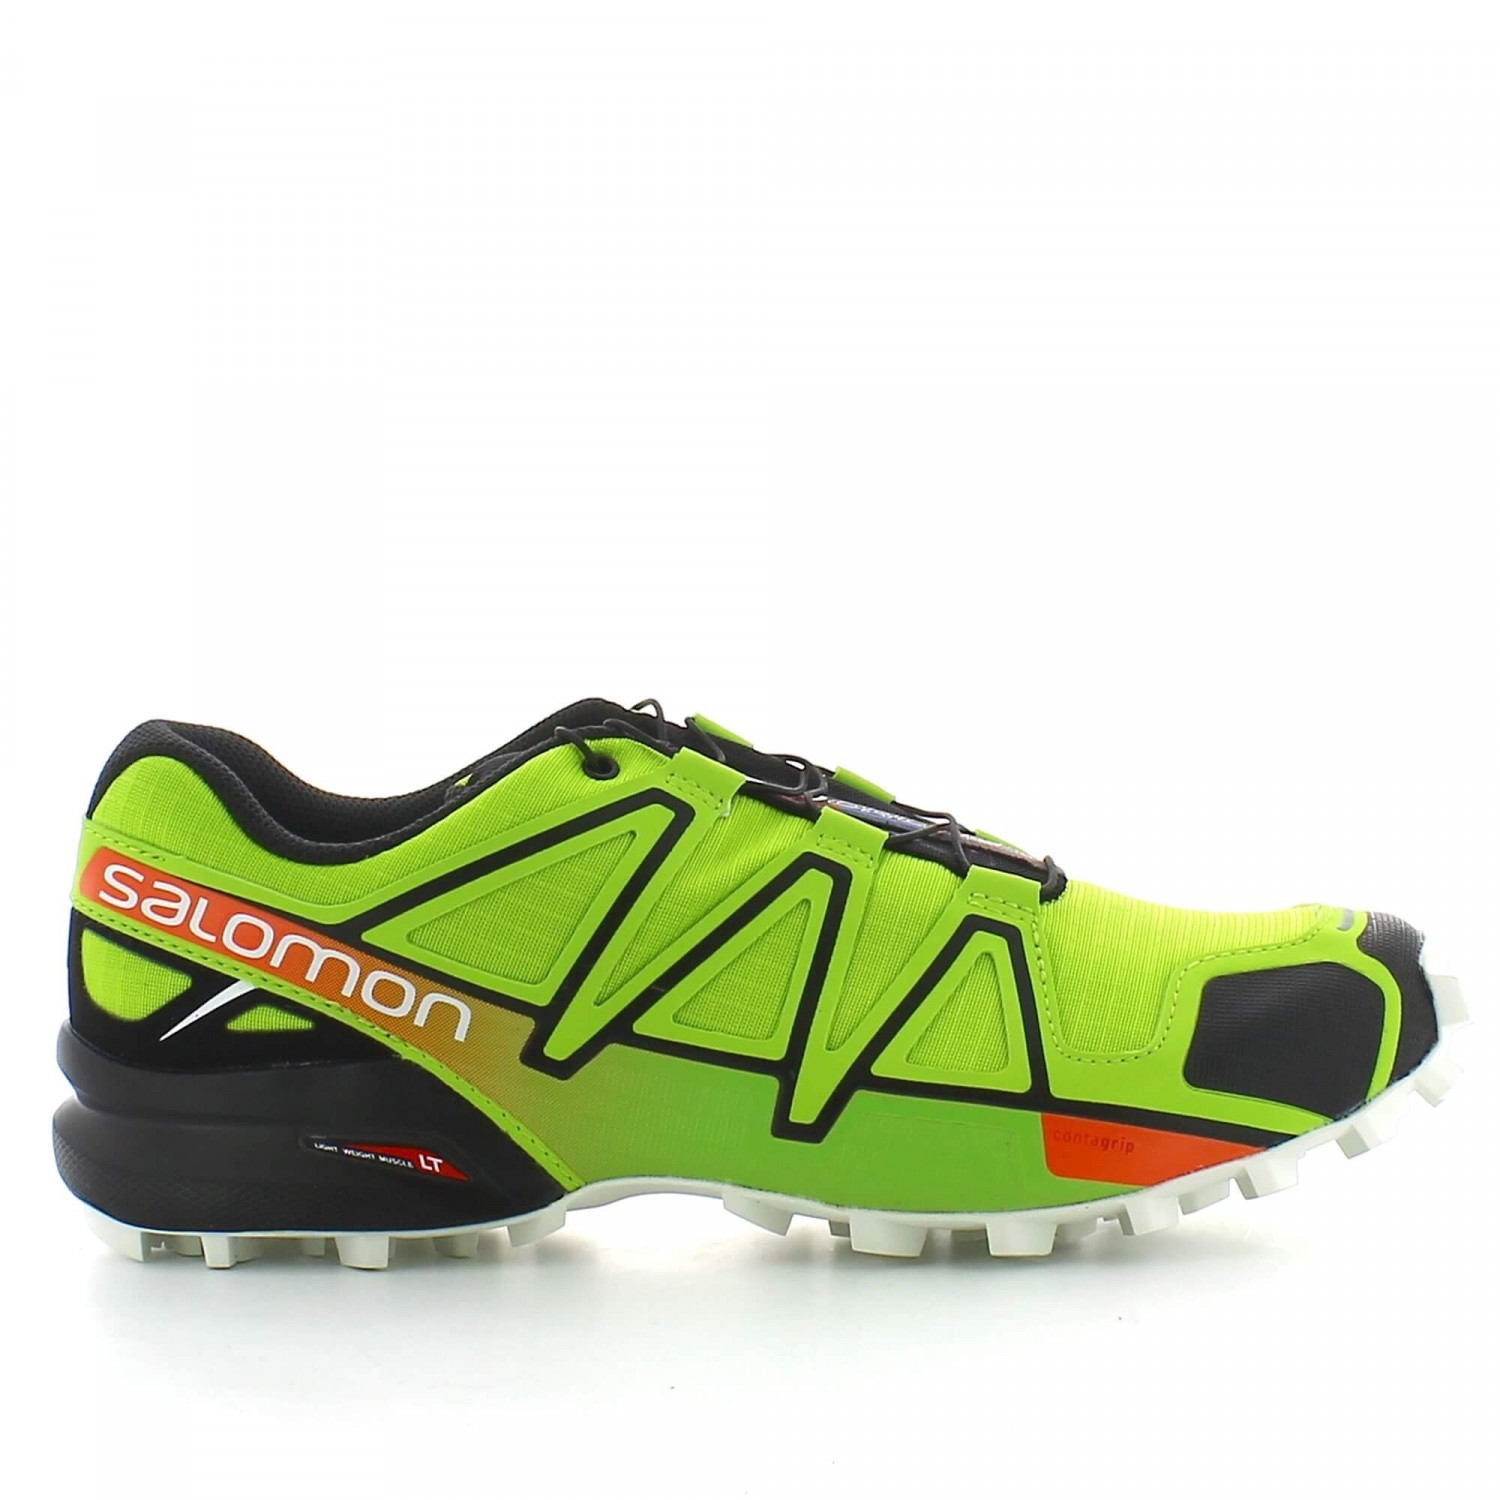 e9e124782c2 Zapatillas trail running Salomon Speedcross 4 lima hombre - Salomon ...